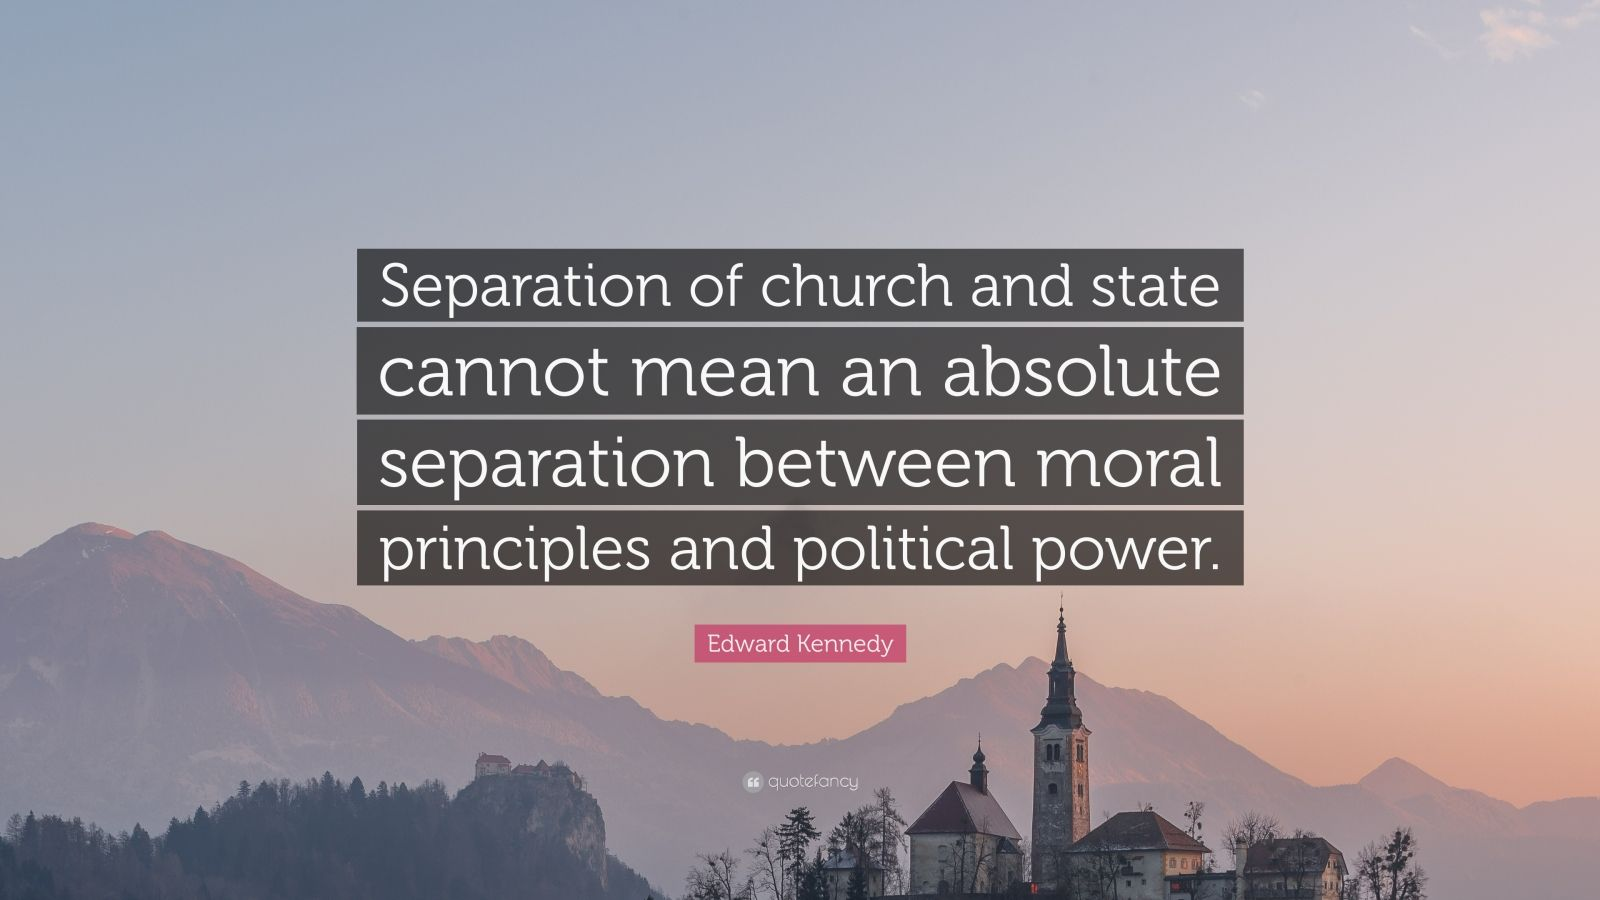 """Edward Kennedy Quote: """"Separation of church and state cannot mean an absolute separation between moral principles and political power."""""""